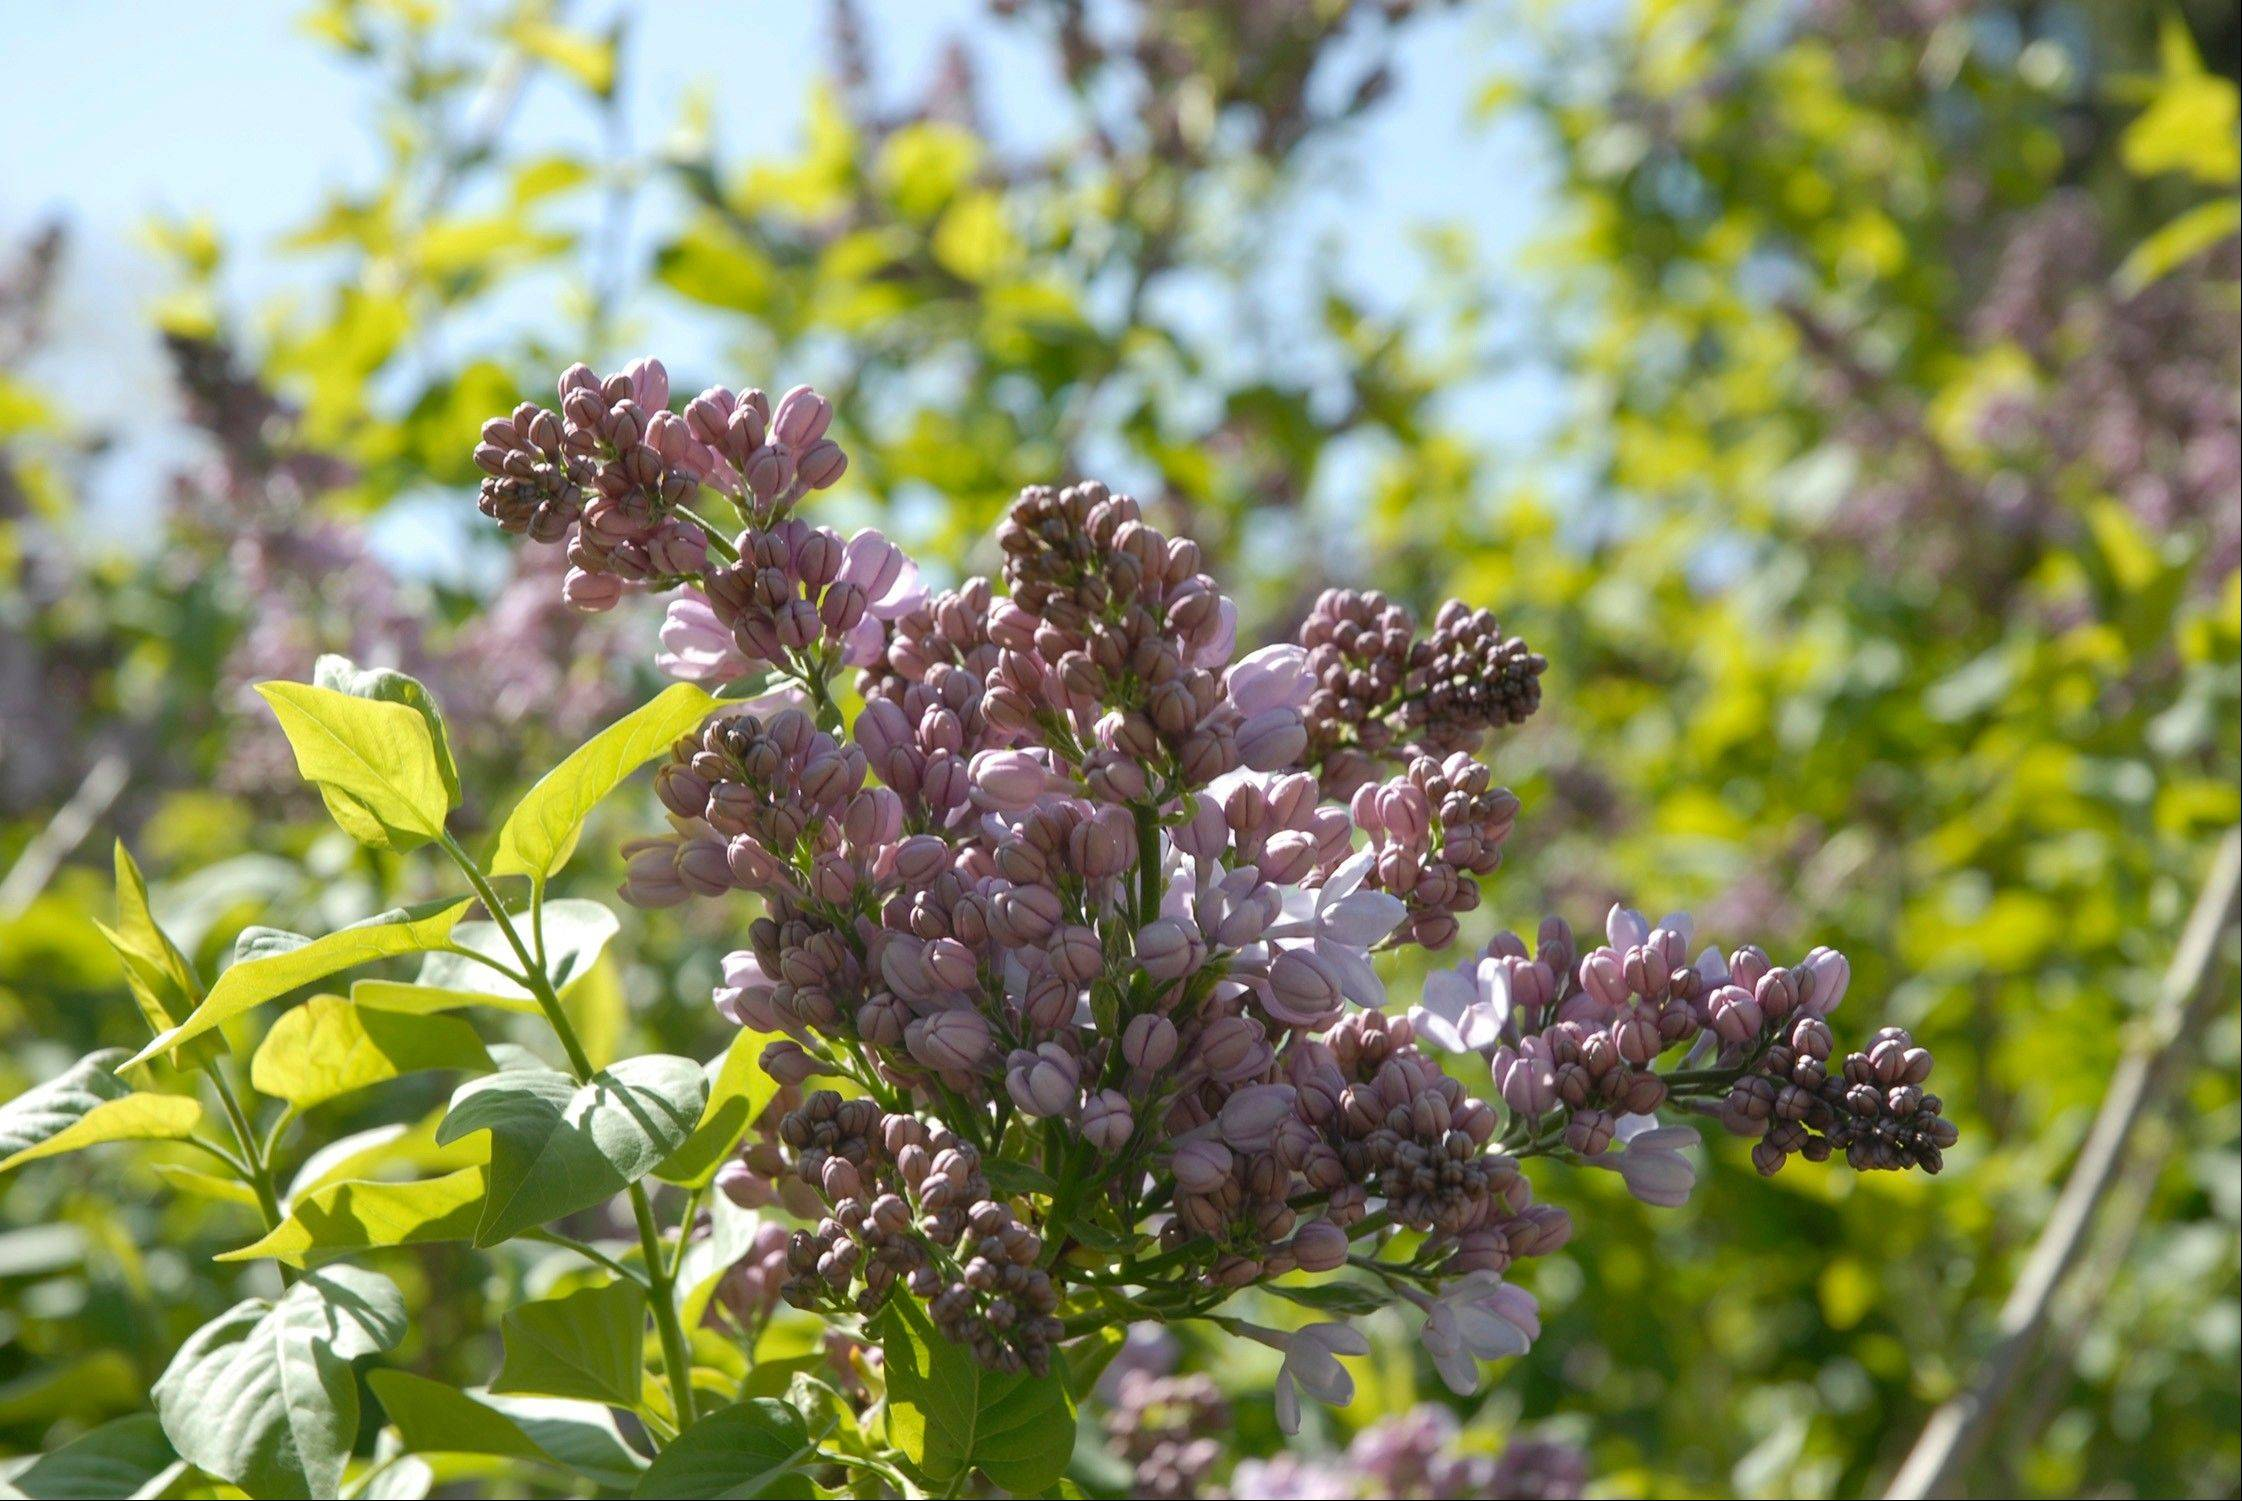 Lilac shrubs will not bloom in the spring if they are pruned over the winter.